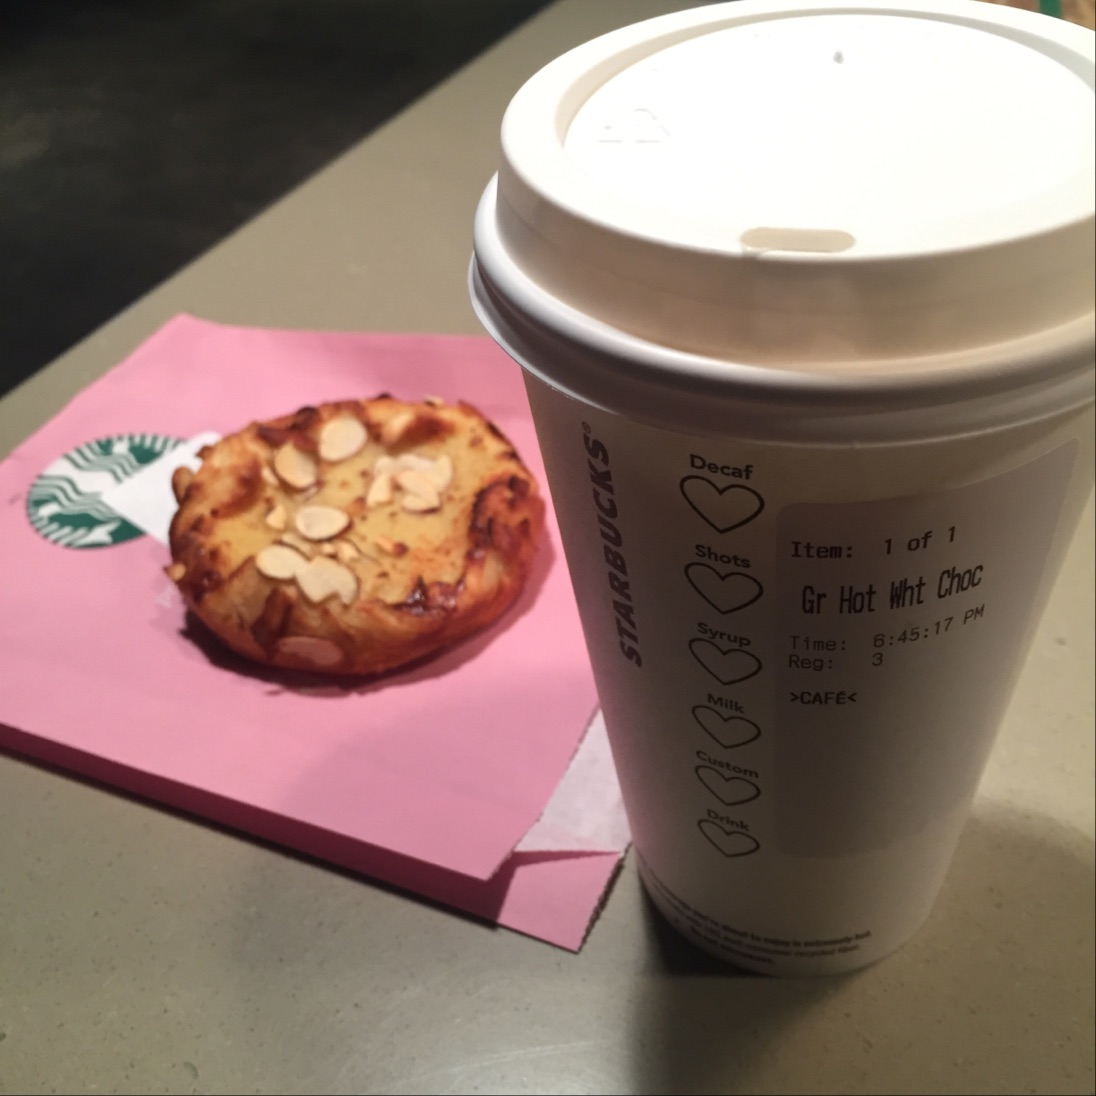 are circumstances right for starbucks to